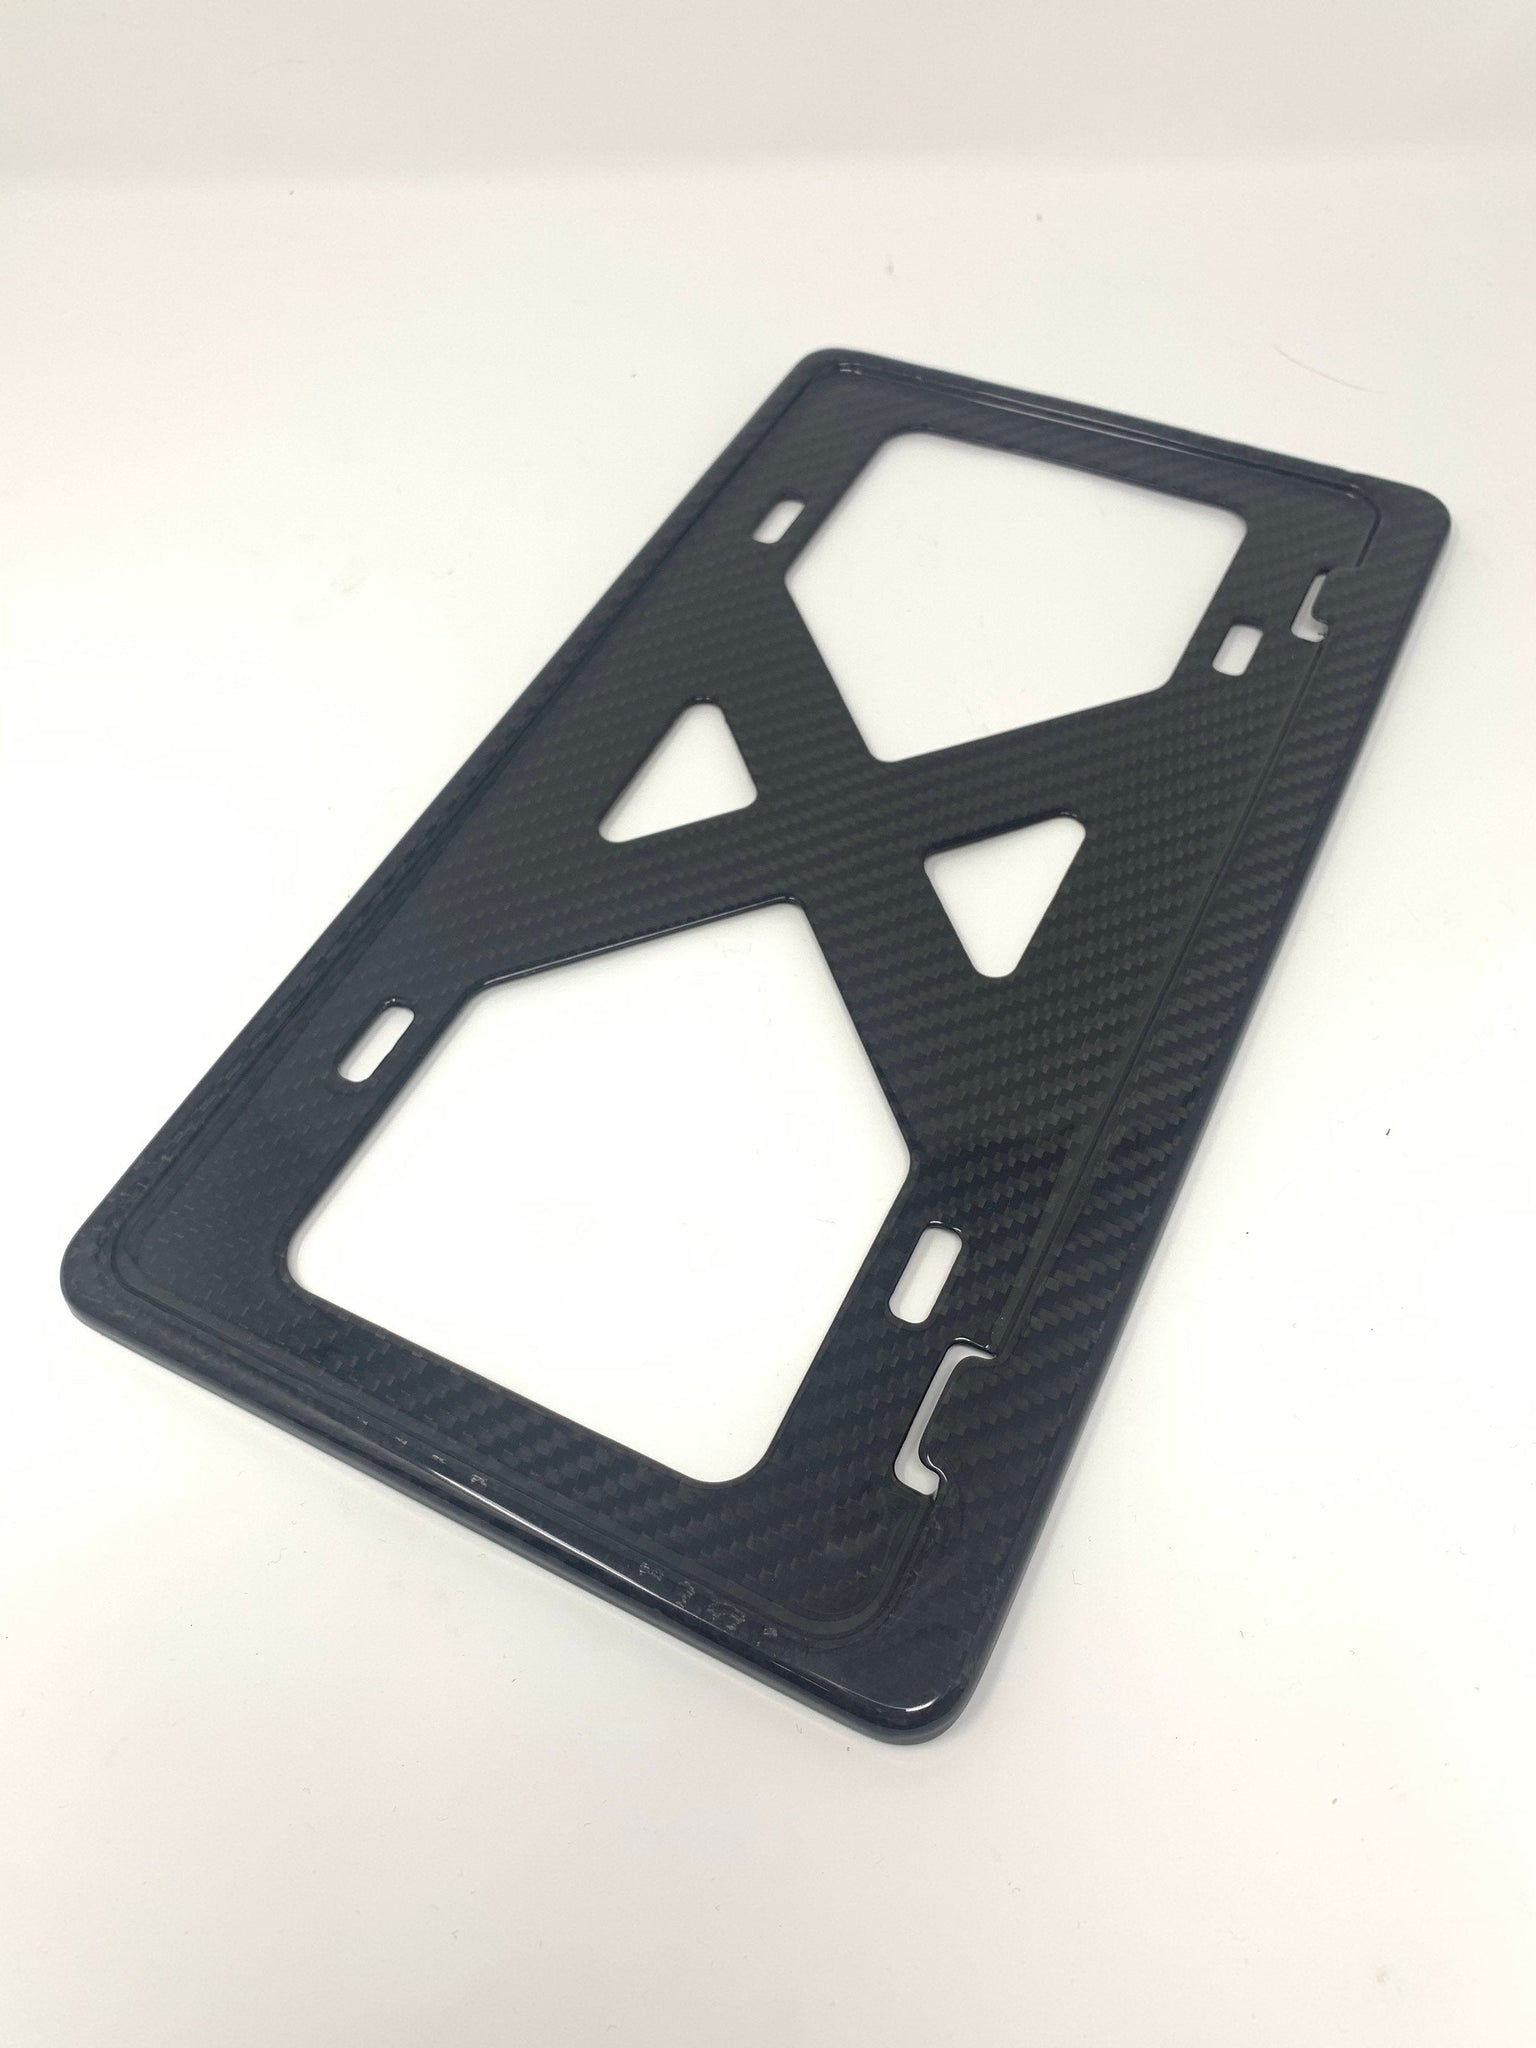 Universal Slim Carbon Fiber Frame for TESLA / Luxury / Fits EURO / Domestic / Bmw /Porsche / Boringmod